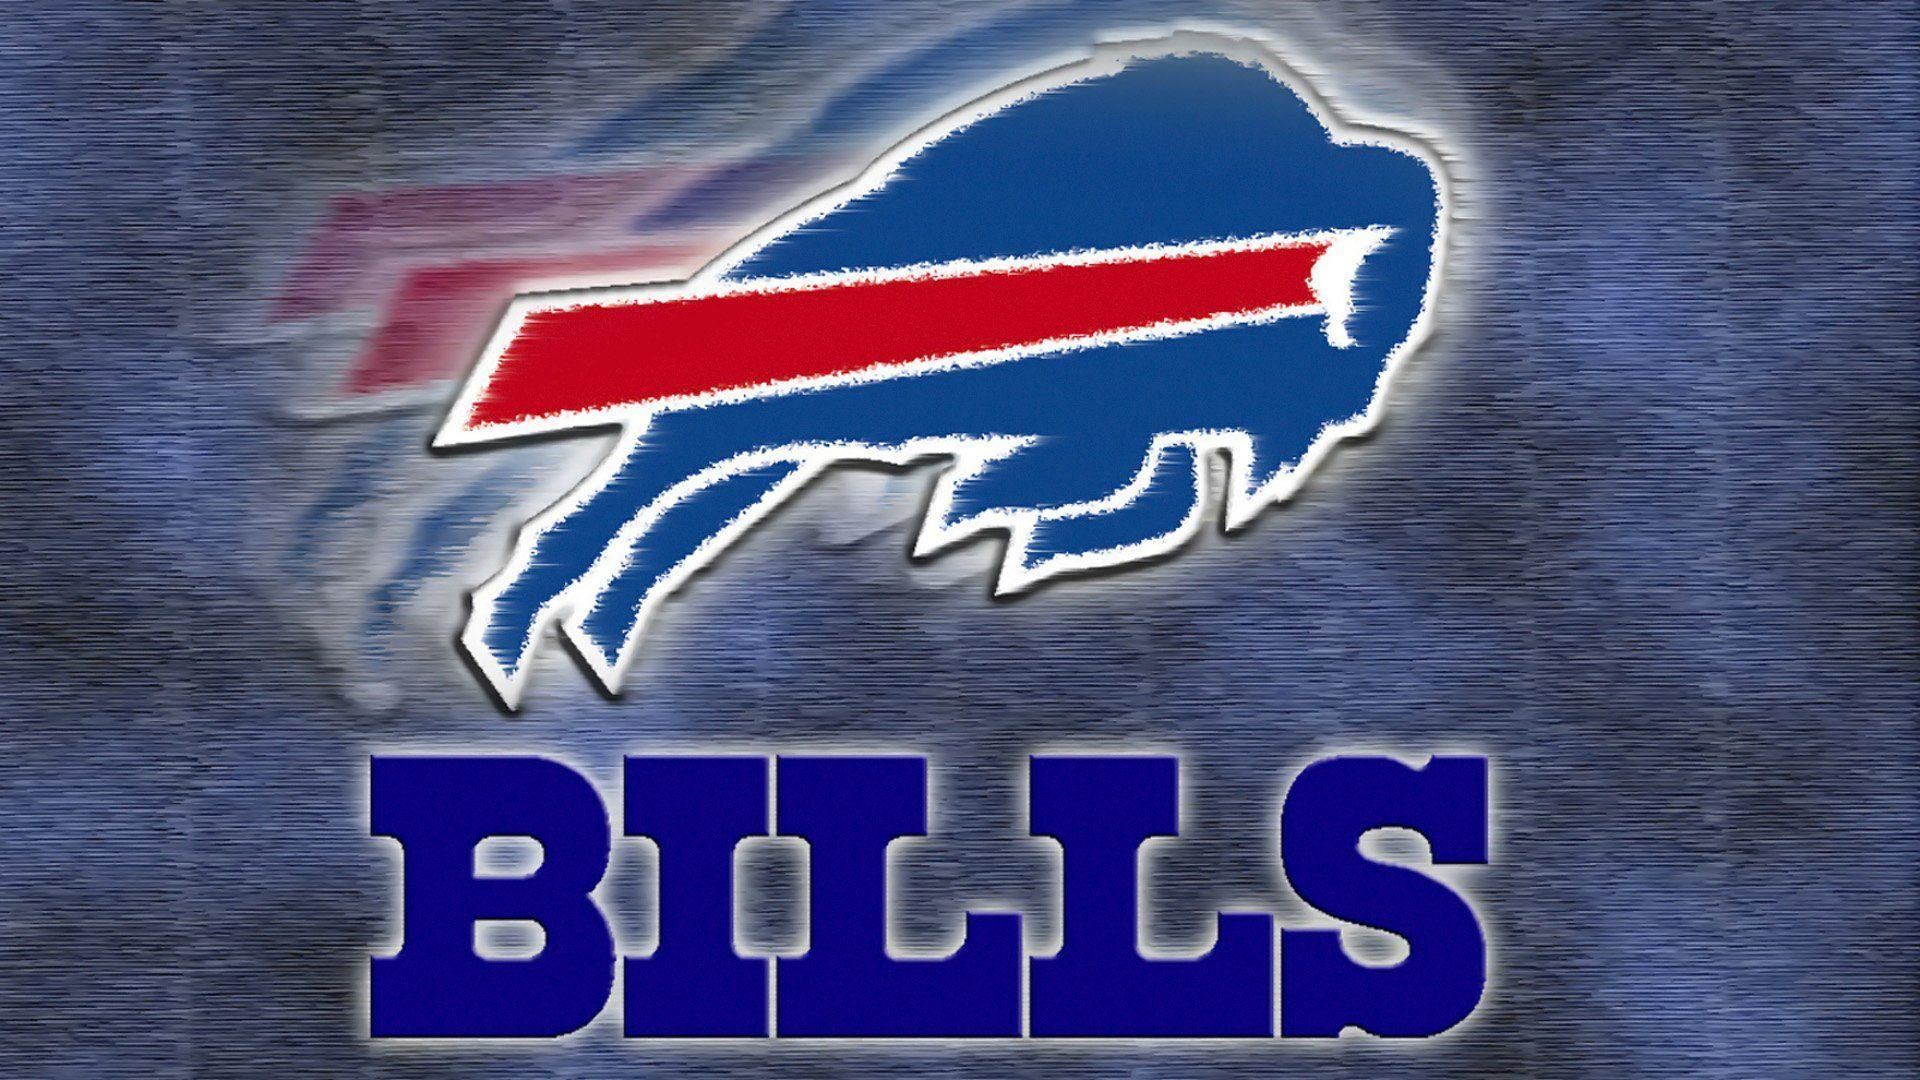 Buffalo Bills Wallpapers